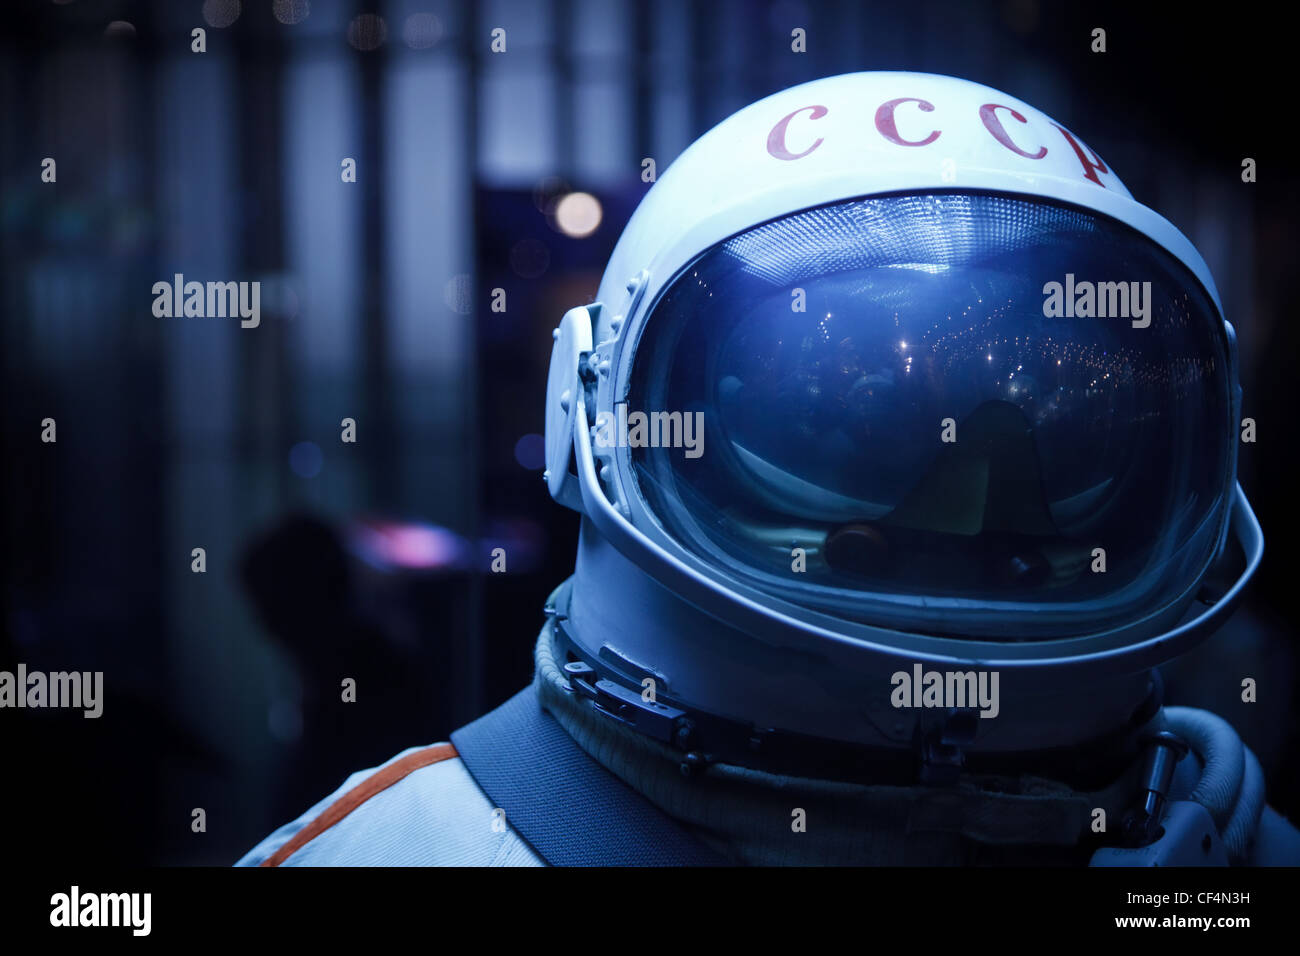 MOSCOW RUSSIA NOVEMBER 8: Space Museum Photo spacesuit Inscription on helmet USSR Close-up November 8 2009 in Moscow - Stock Image